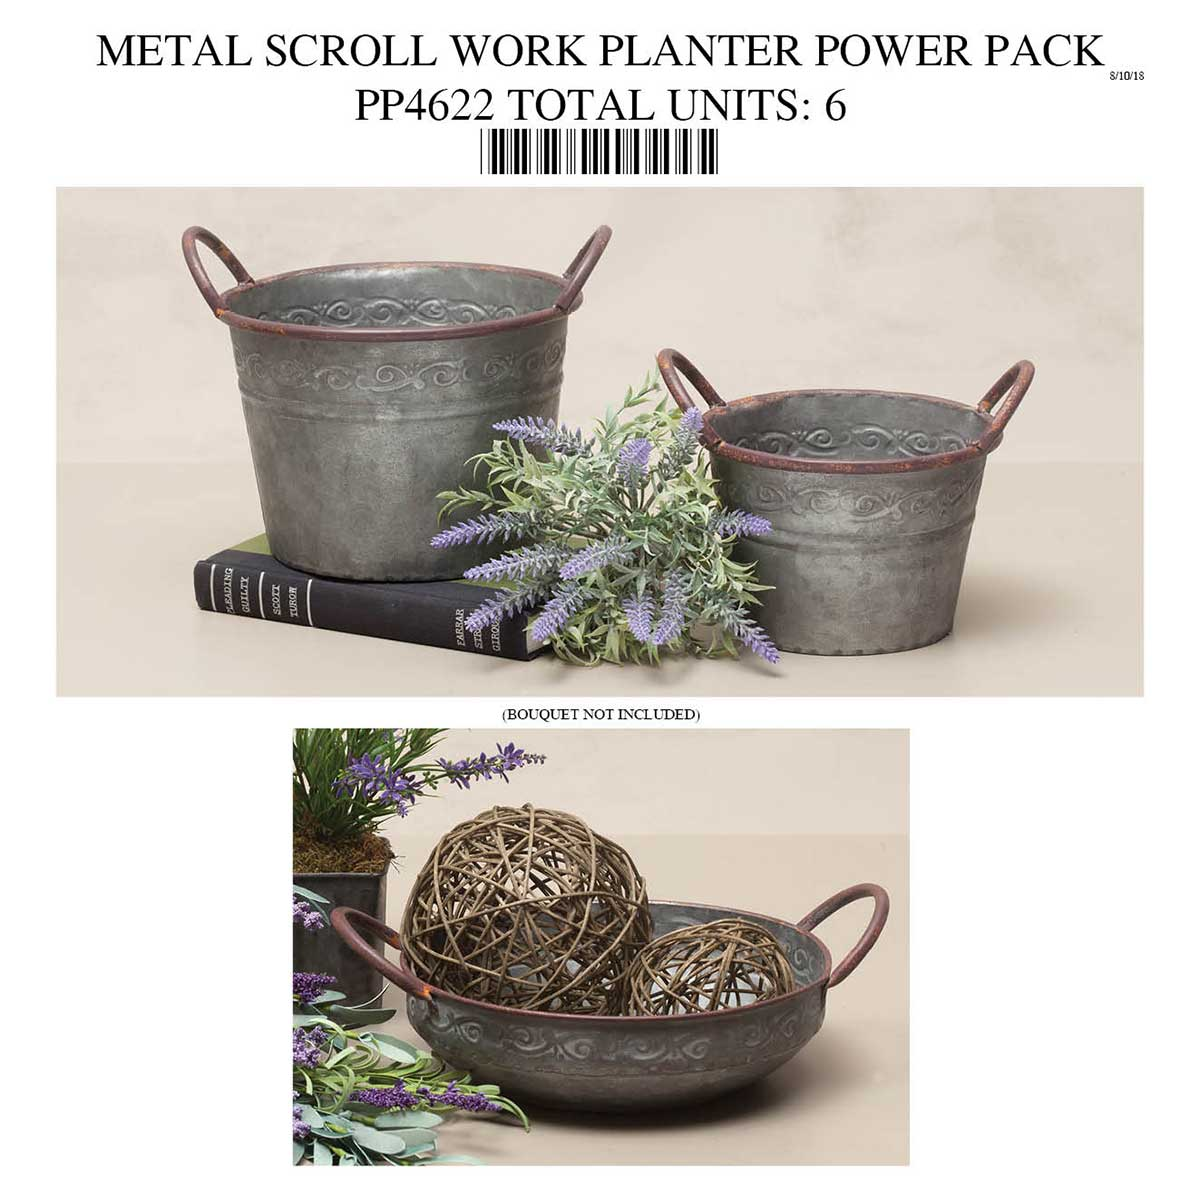 COPPER RIM PLANTER AND BOWL POWER PACK PP4622